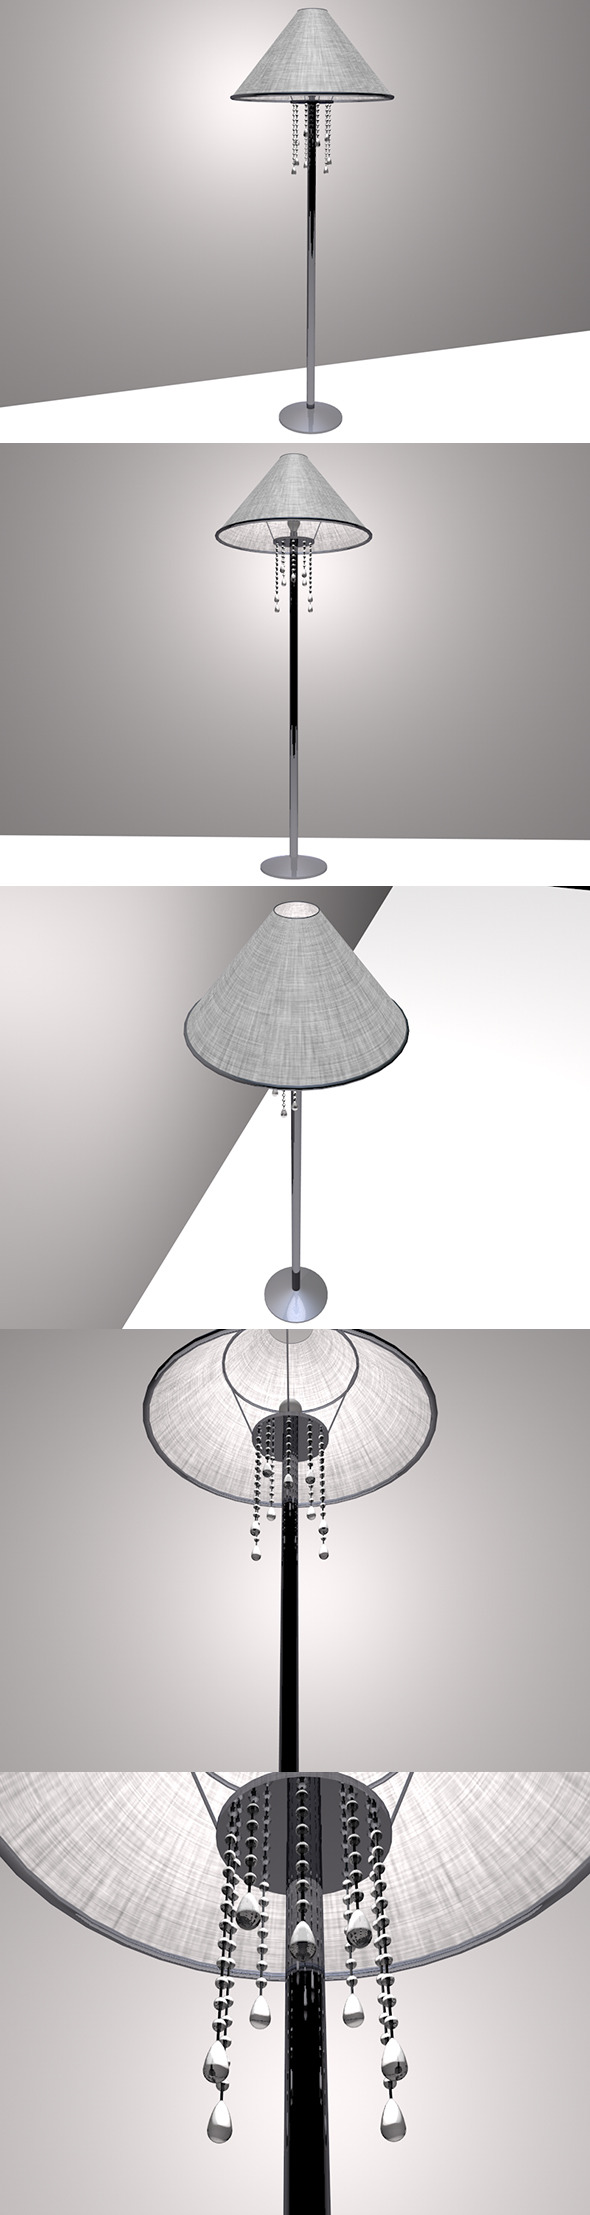 3DOcean Lamp Shade 4562865